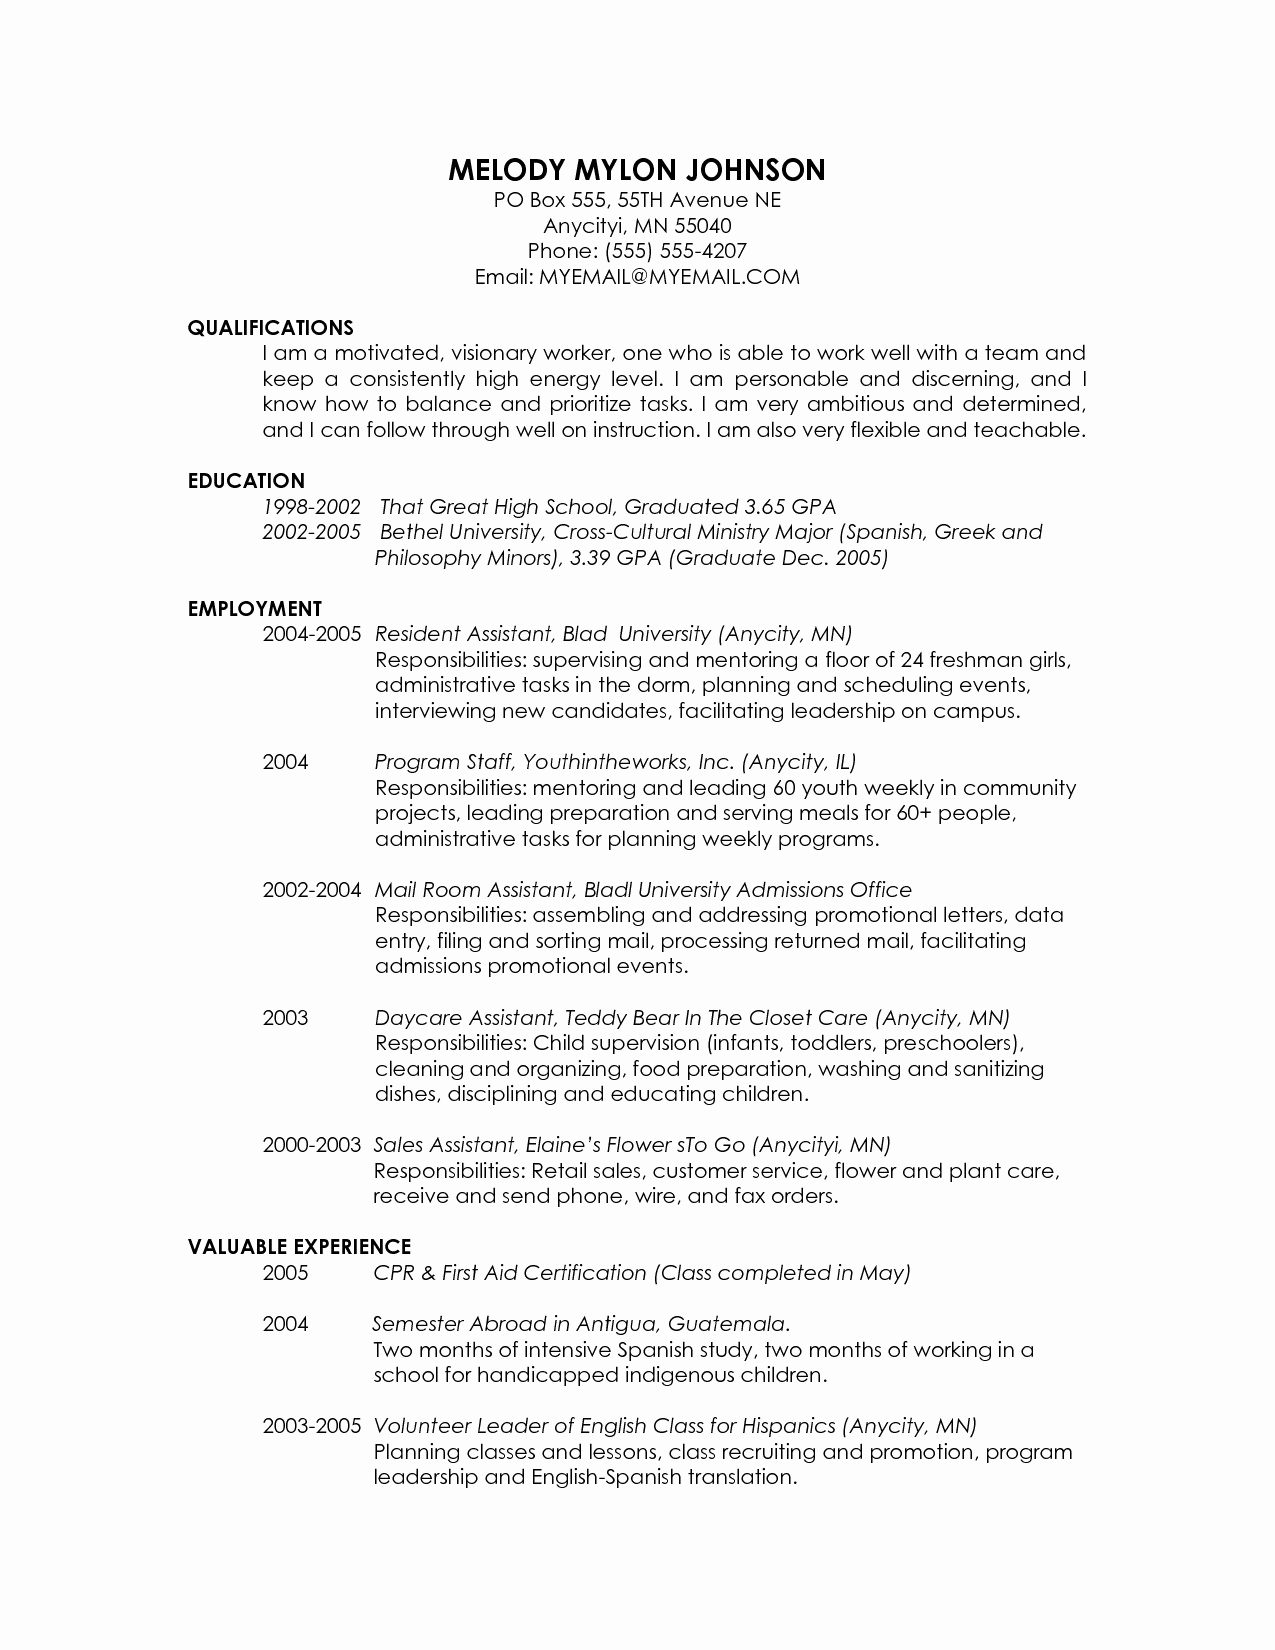 grad school resume template example-Graduate School Resume Template Best Utd Resume Template Unique Fishing Resume 0d 11-t